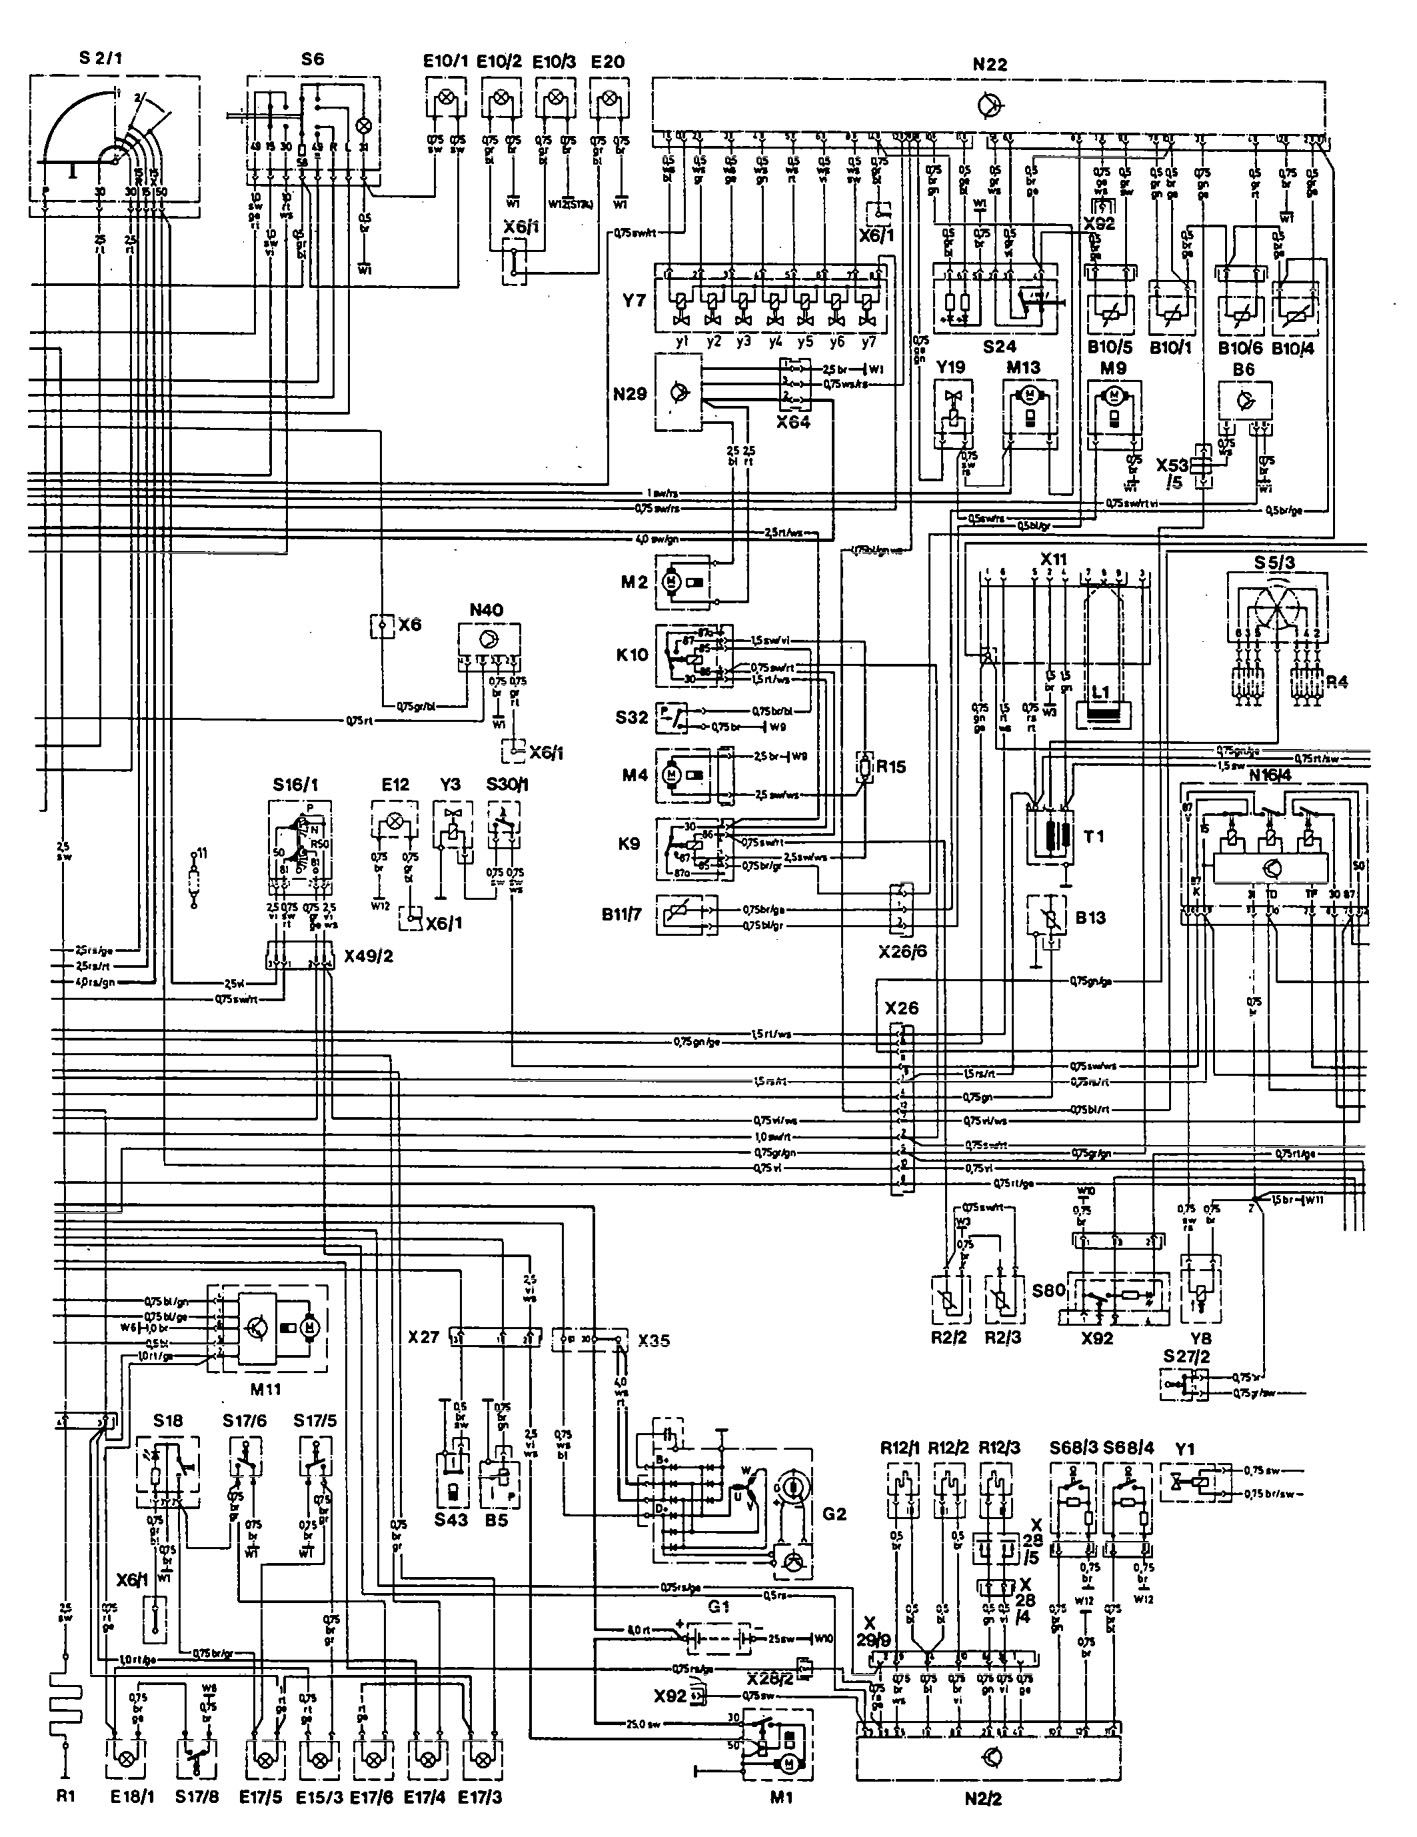 ... Mercedes-Benz 300E - wiring diagram - ignition (part 2)